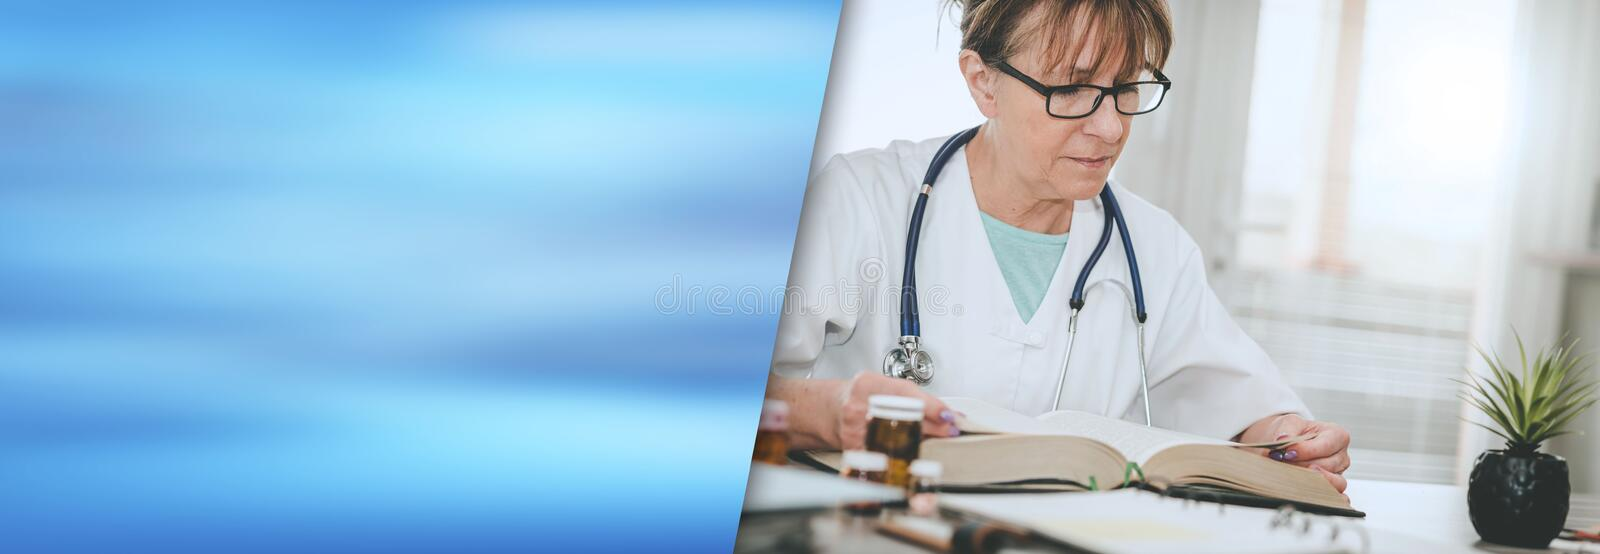 Female doctor reading a textbook; panoramic banner stock photo